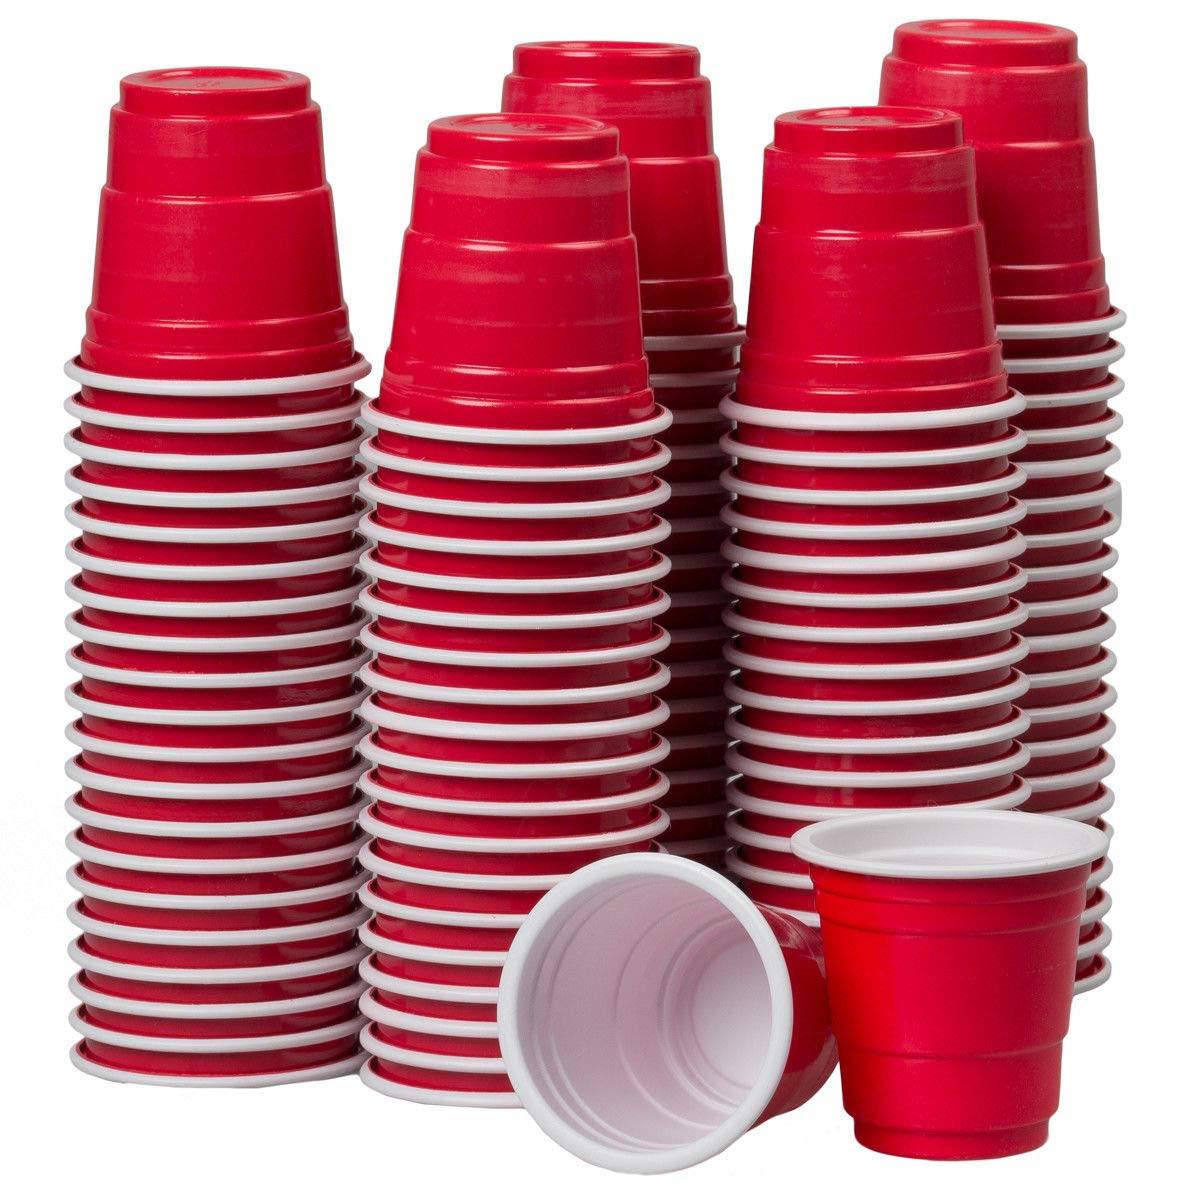 120ct Mini Red Solo Cups 2oz Plastic Disposable Shot Glasses Party Shooter Tableware